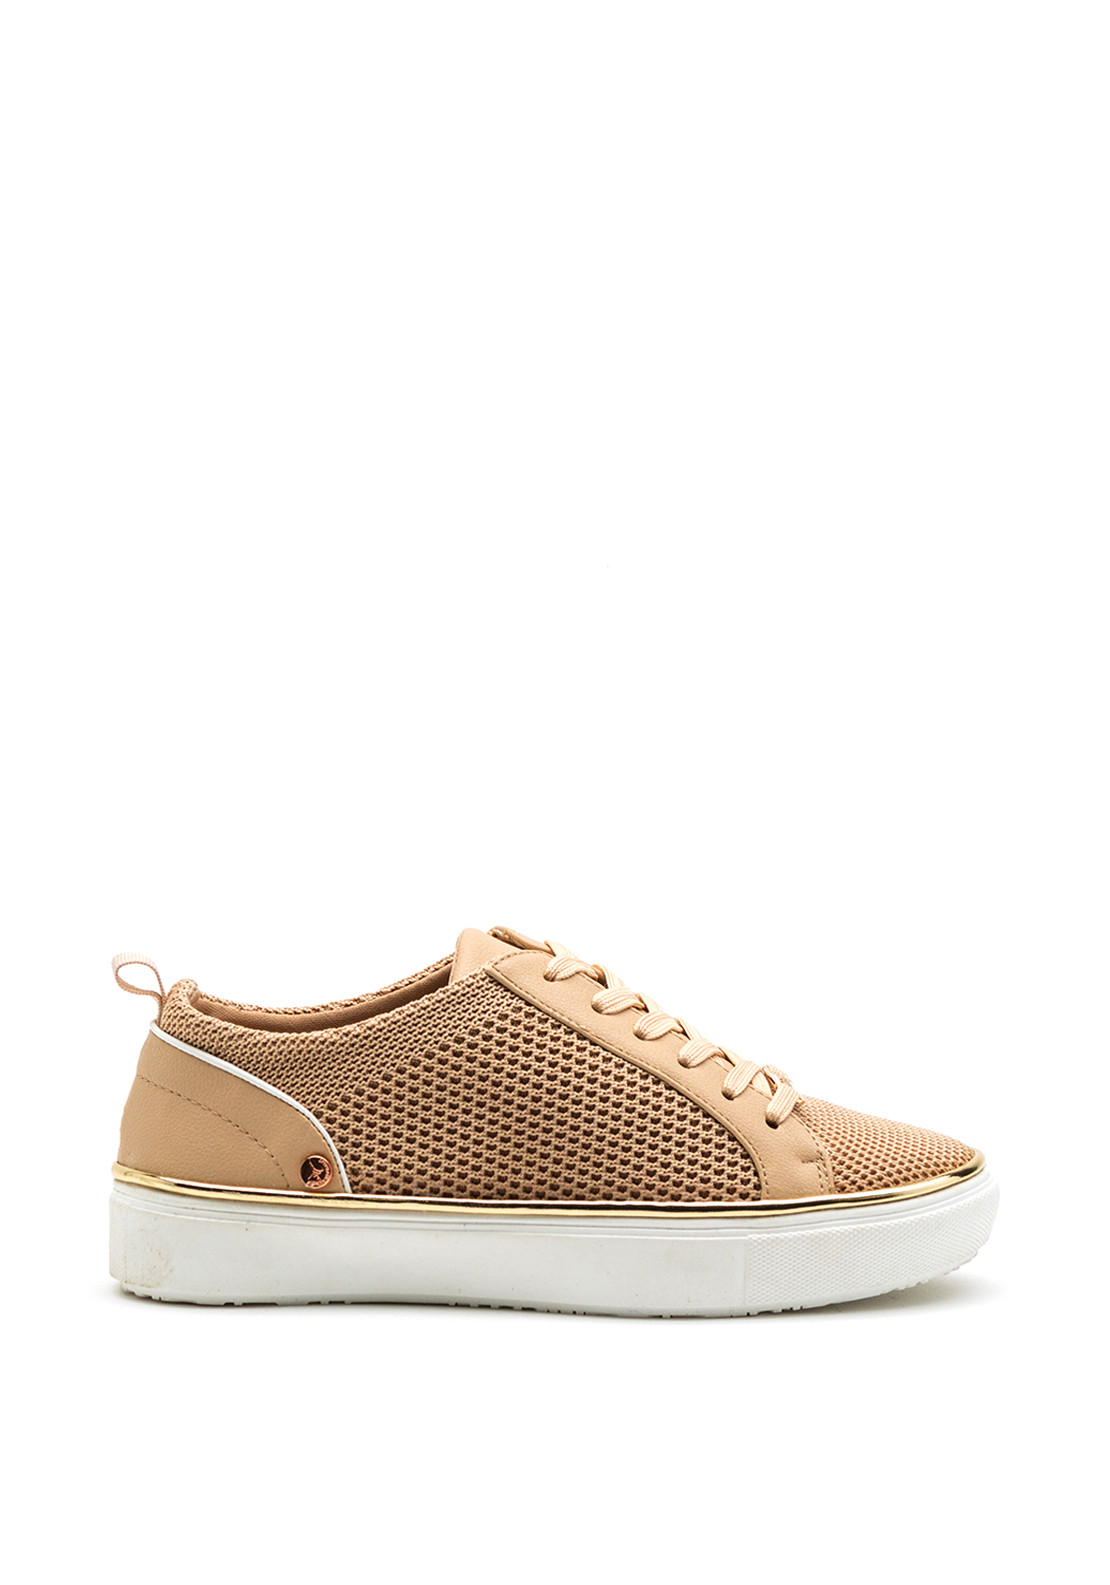 Rant and Rave Averil Woven Trainer, Nude